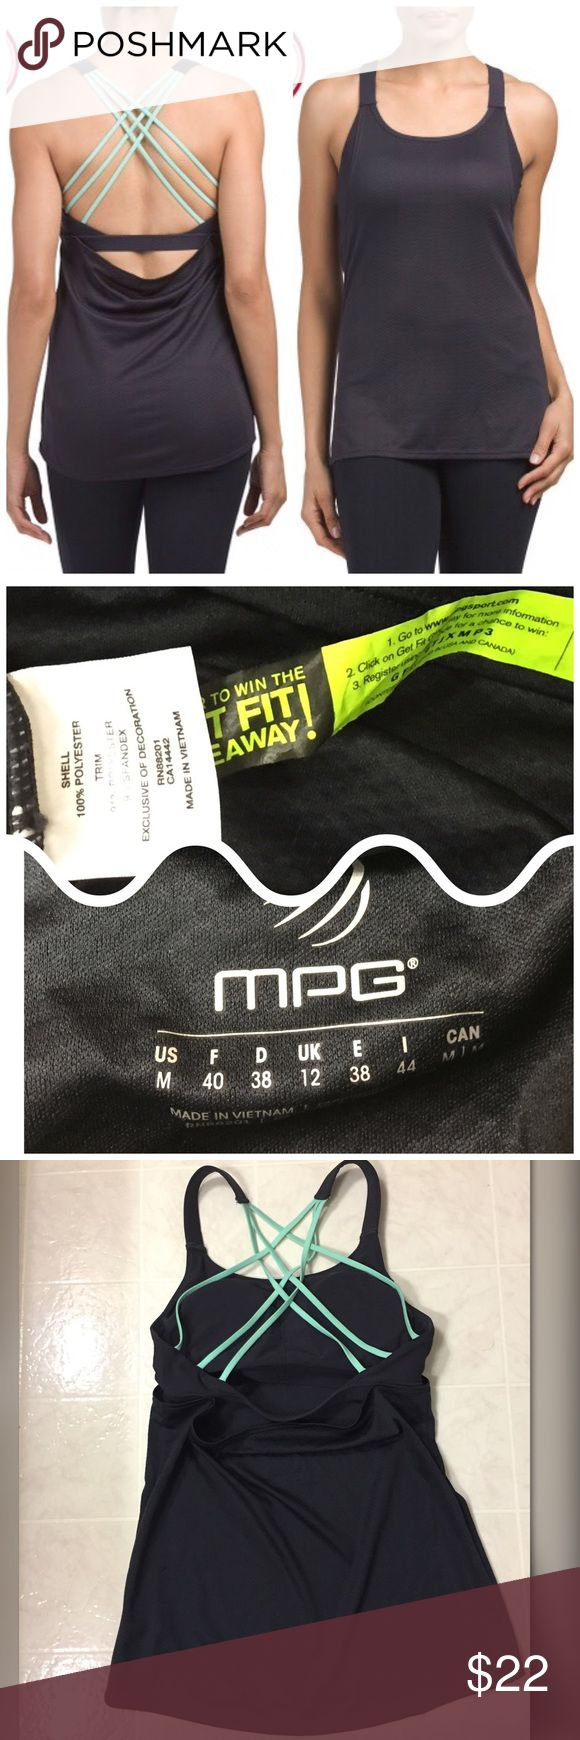 MPG STRAPPY BUILT IN SPORTS BRA LONG TANK TOP NO TRADES - SEE PICTURE 4 FOR DESCRIPTION ON THIS AMAZING WORKOUT TANK. COLOR IS CHARCOAL AND GREEN. TOO IS BRAND NEW. TAGS HAVE FALLEN OFF  DURING STORAGE. TAG INSIDE SHIRT THAT GETS CUT OFF STILL INTACT.   ITEMS SOLD SEPARATELY MPG Tops Tank Tops